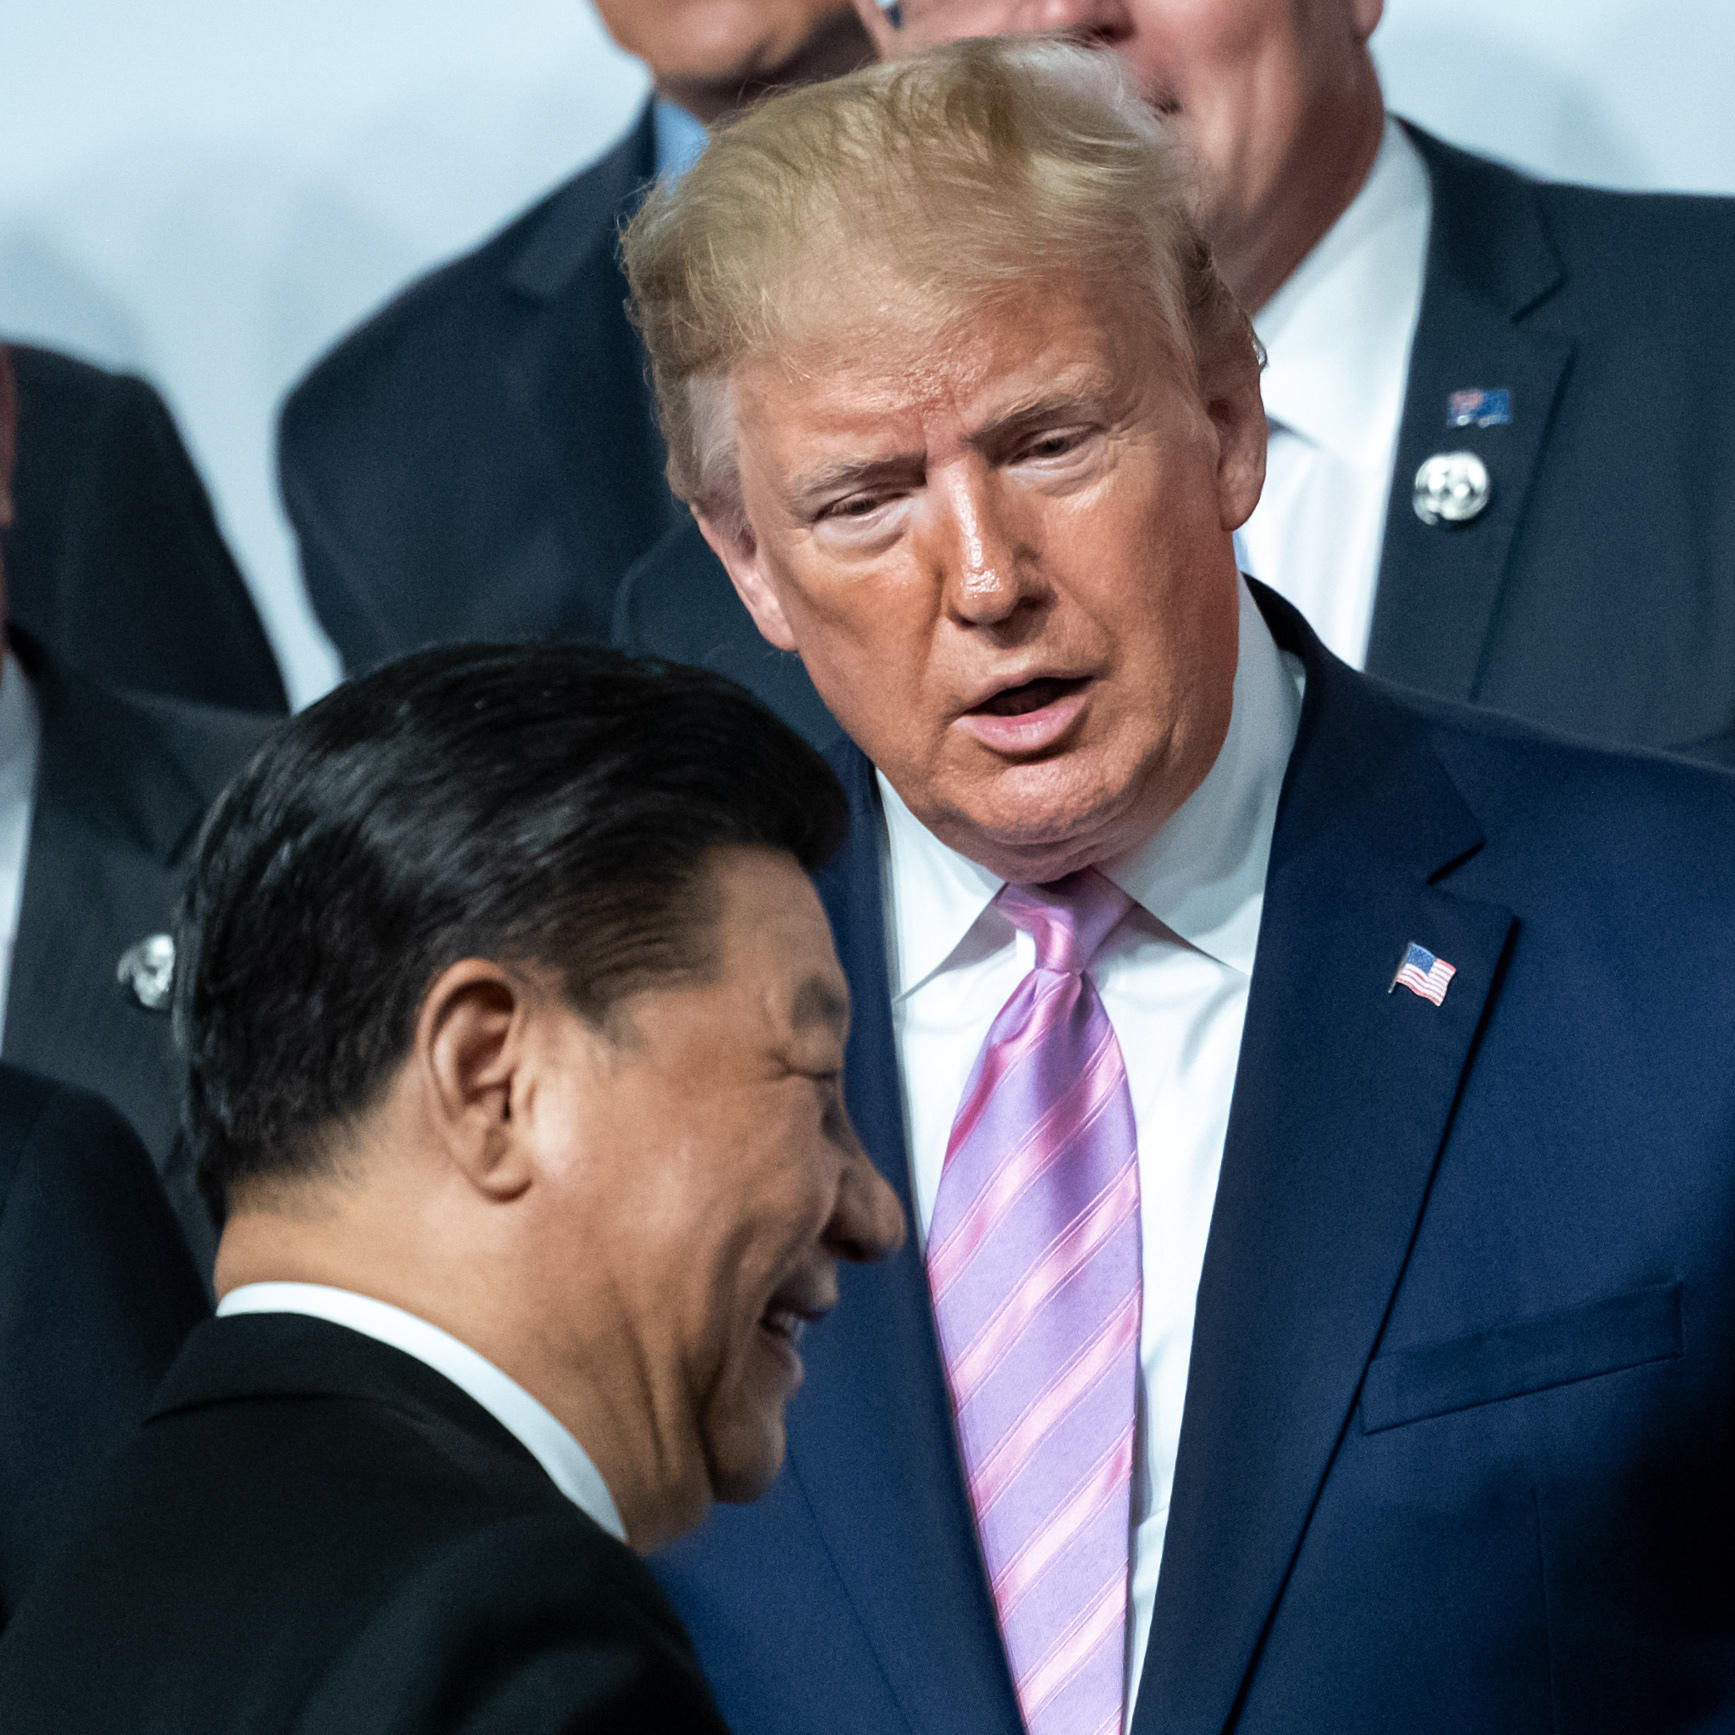 Trump Offers Meeting With China's Xi To Resolve 'Hong Kong Problem'